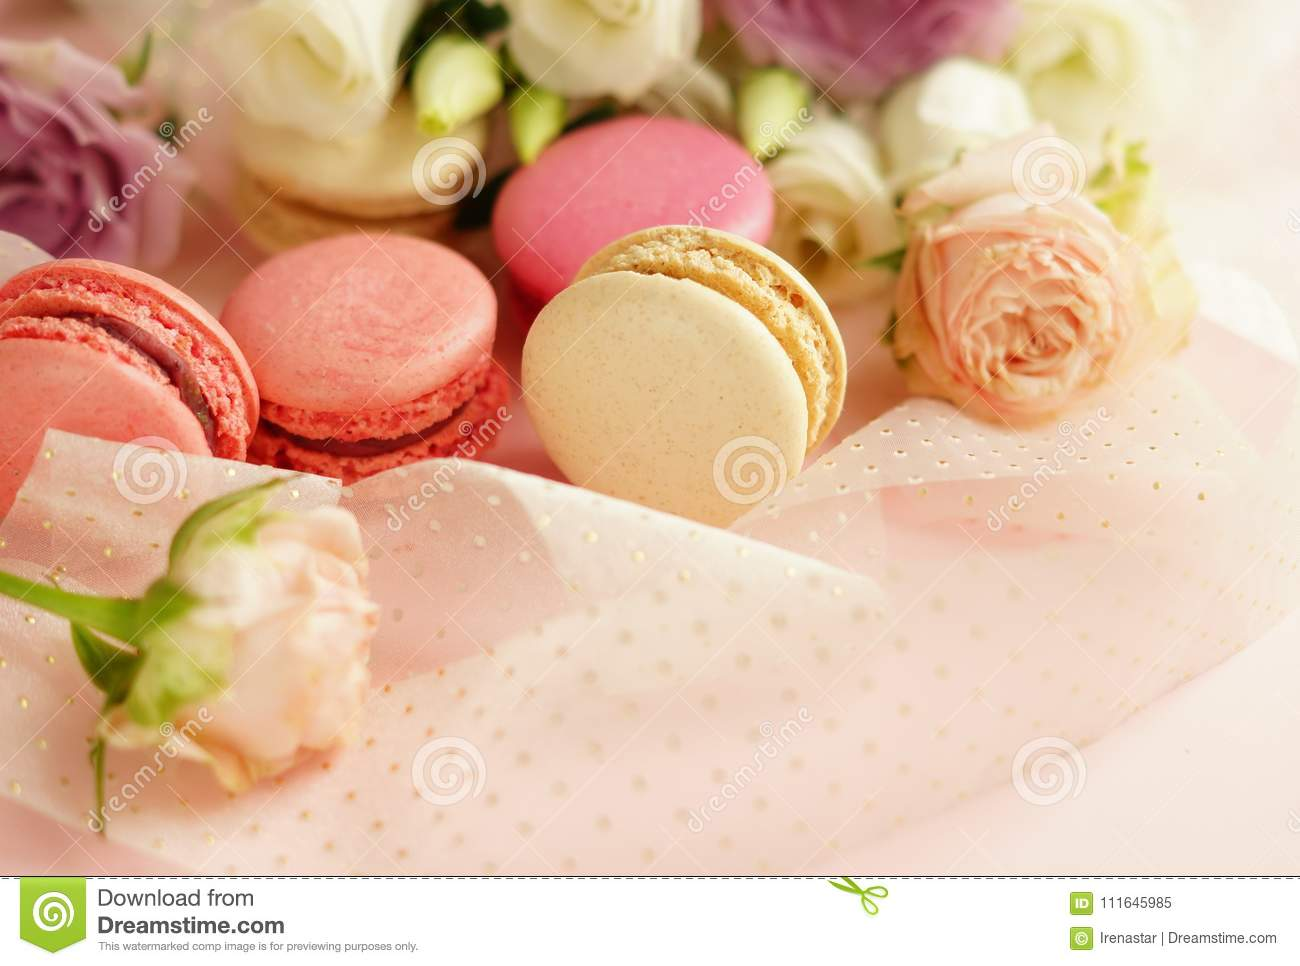 Macaroons in pastel colors with flowers on a pale pink background.Holiday background